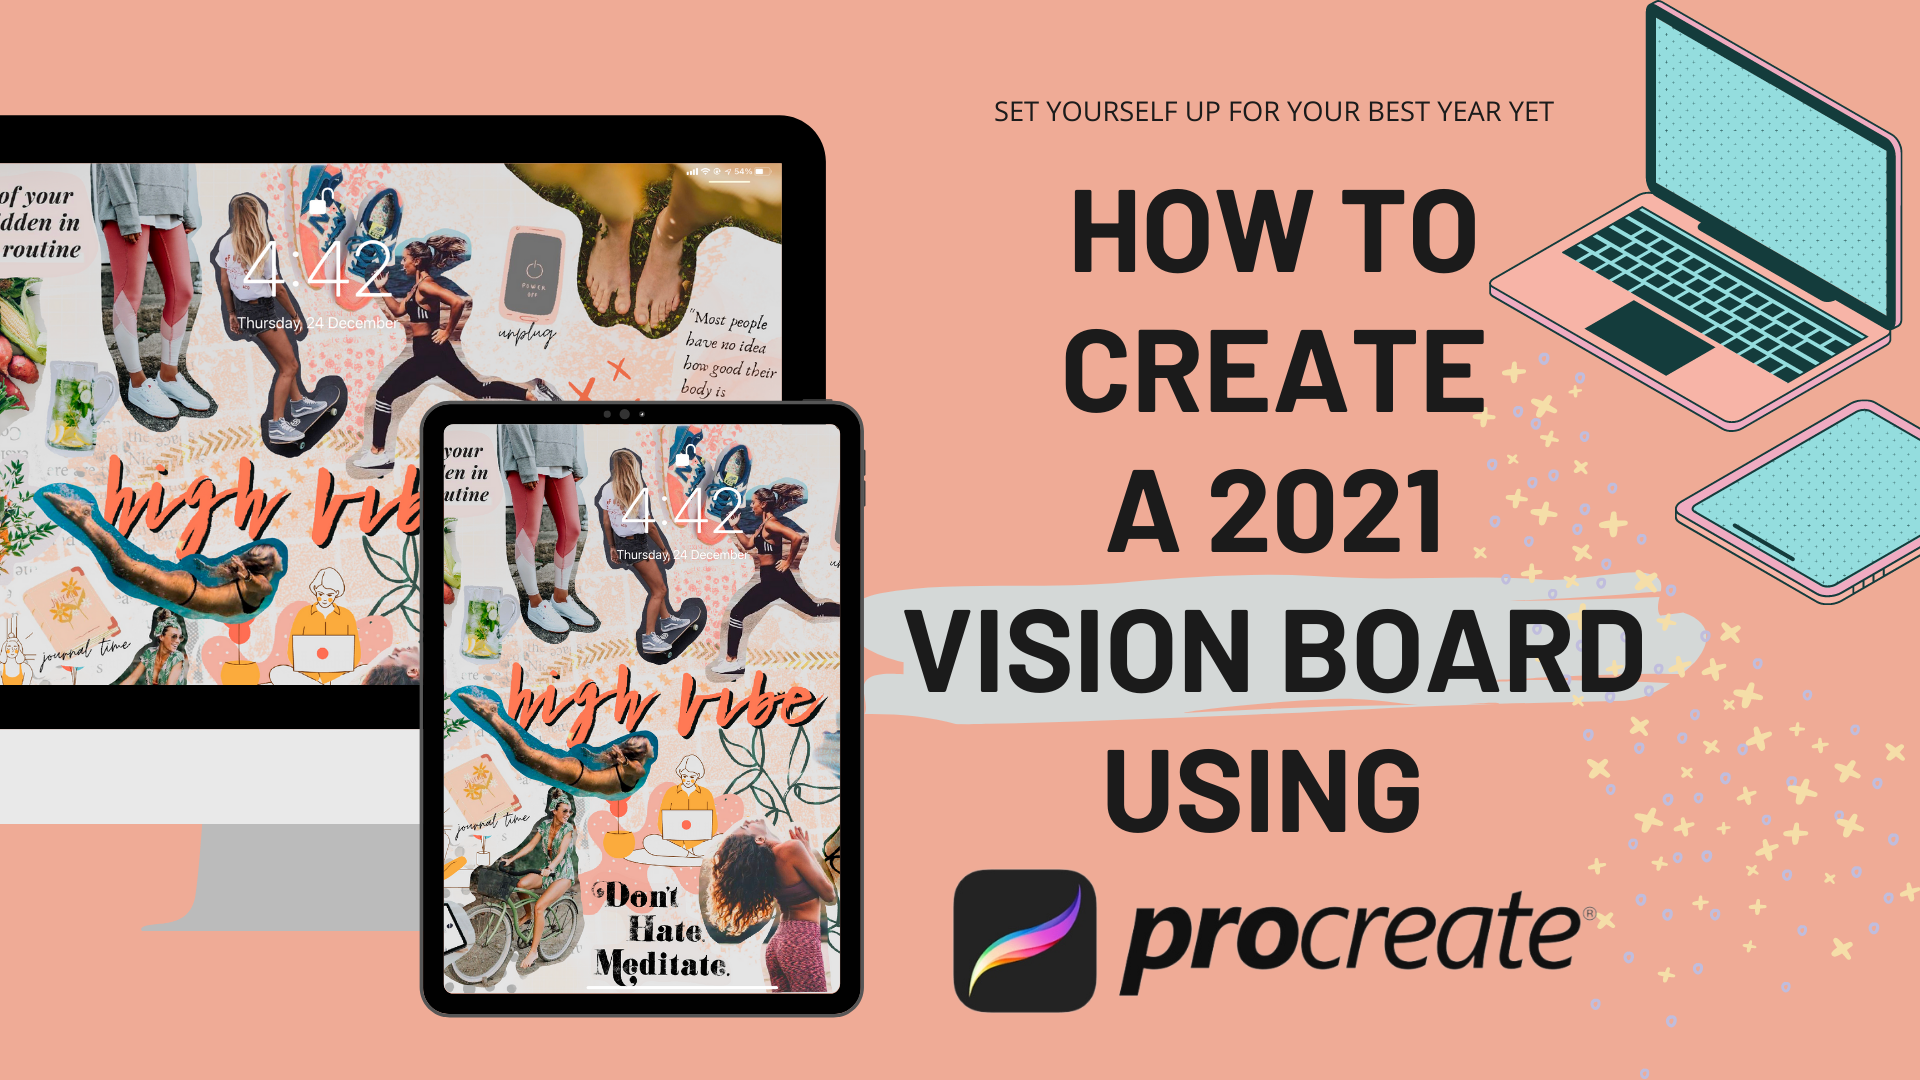 How To Create A 2021 Vision Board Using Procreate